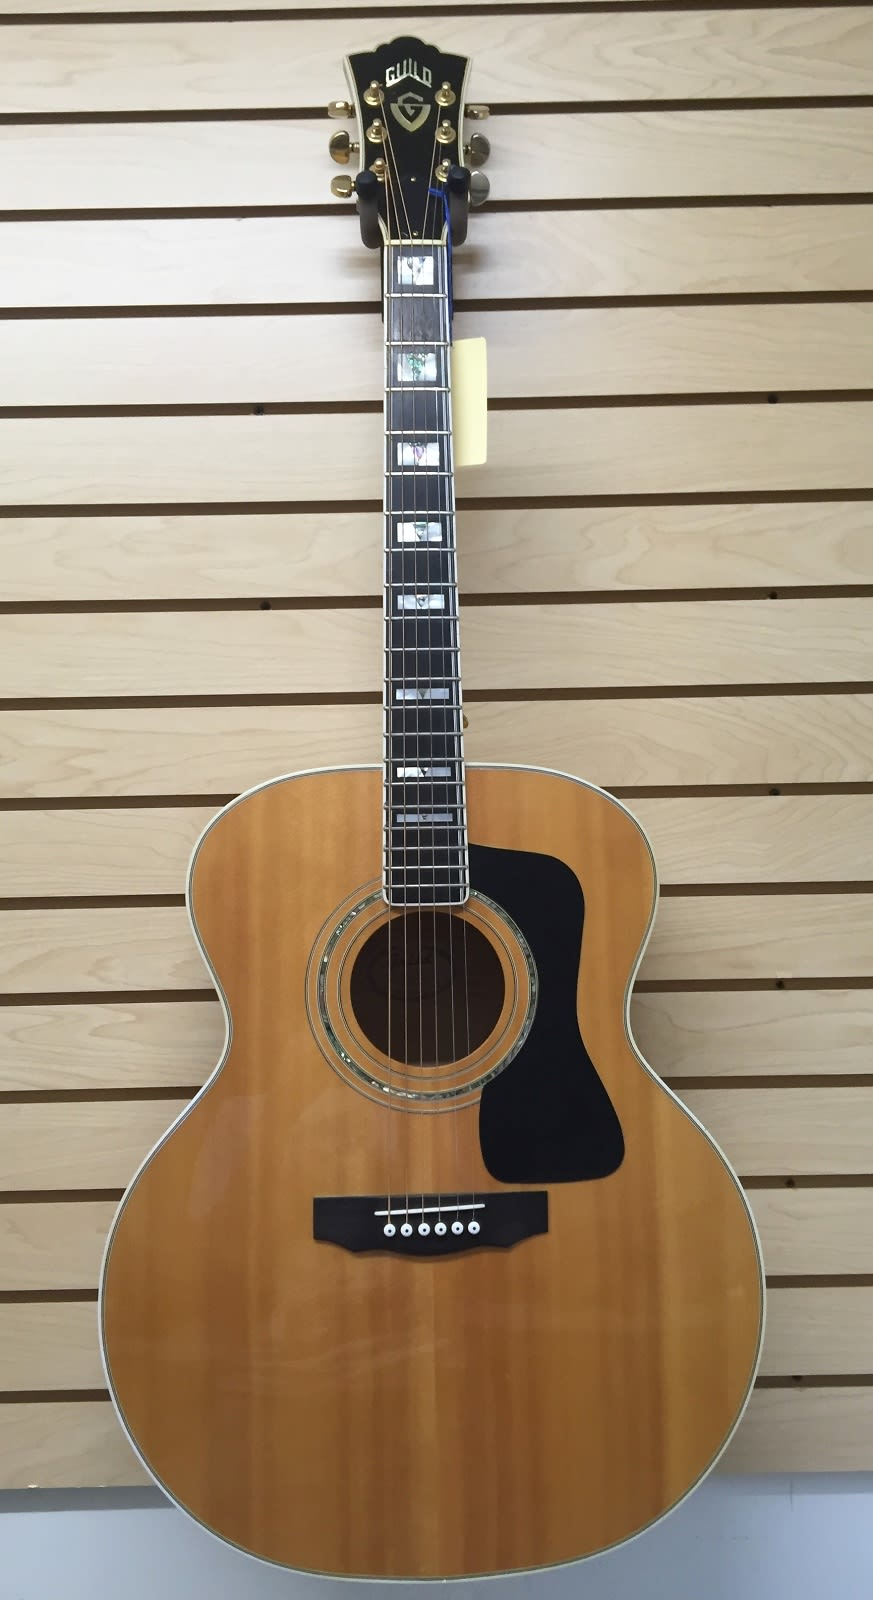 guild jf65 acoustic electric jumbo guitar westerly ri reverb. Black Bedroom Furniture Sets. Home Design Ideas